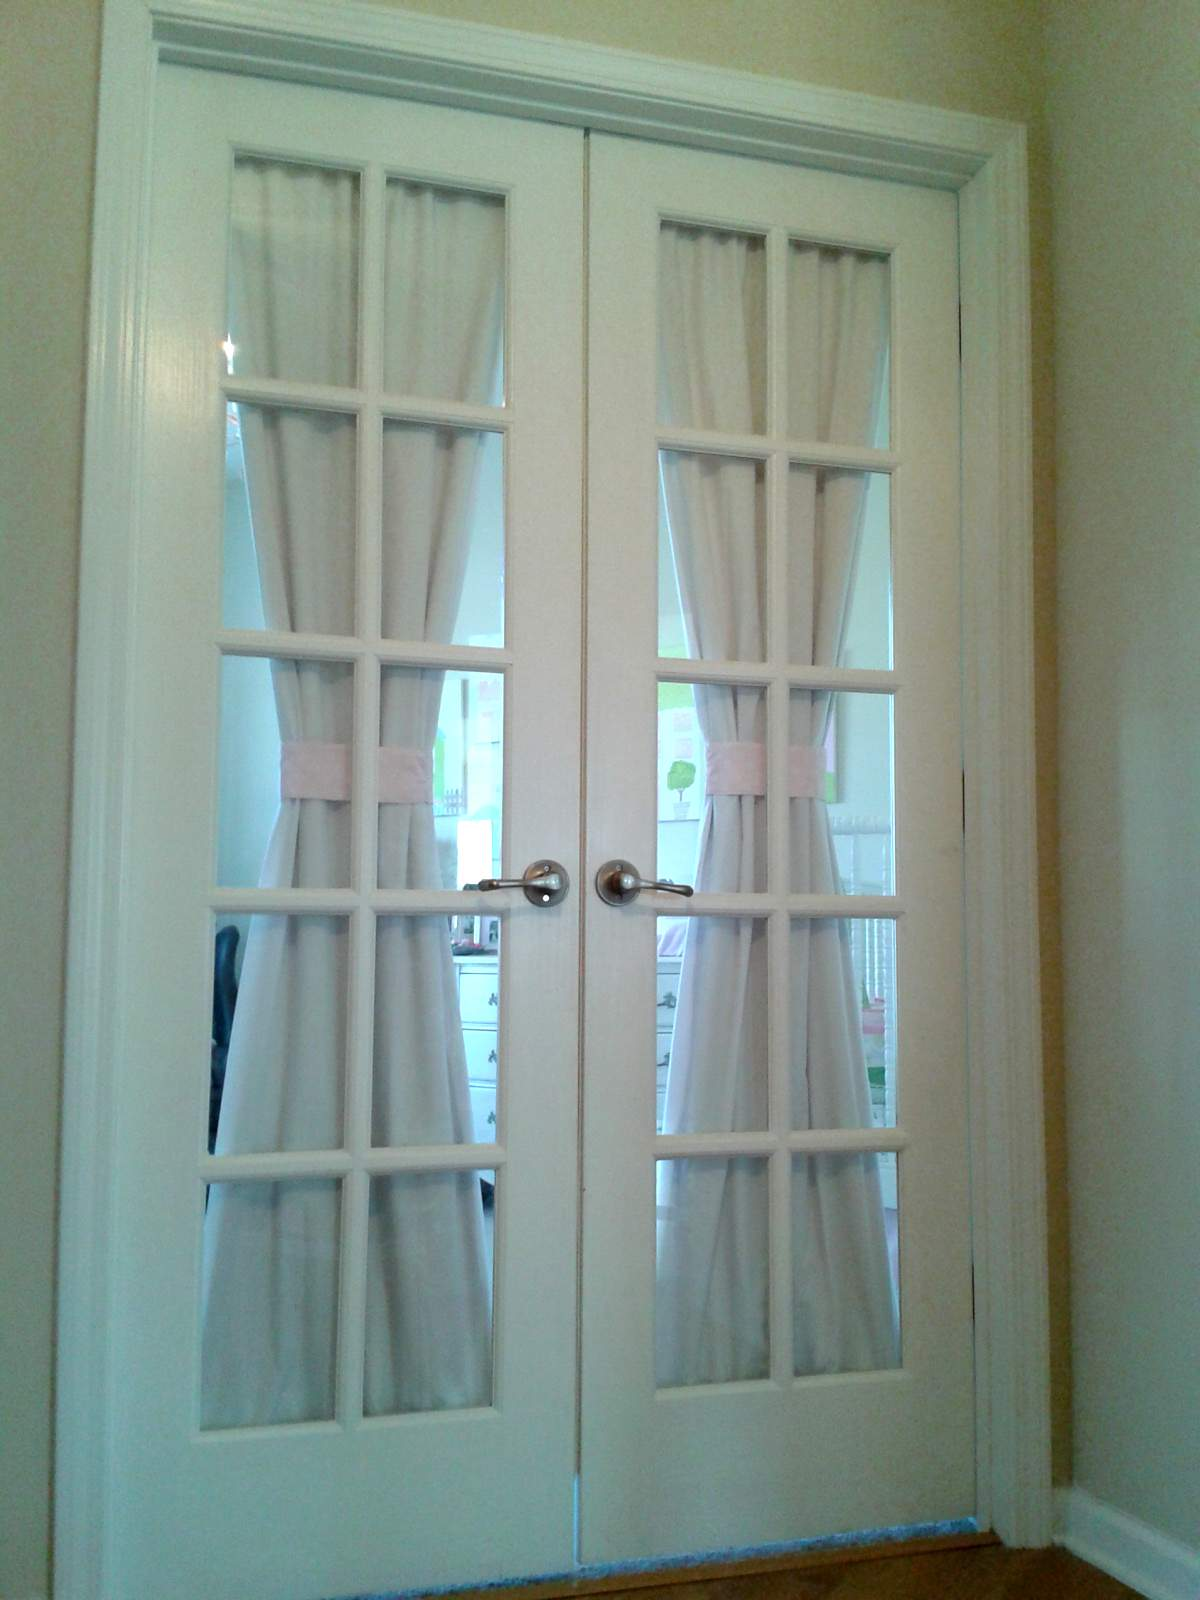 A diyer s home nursery tour campclem for Home hardware interior french doors